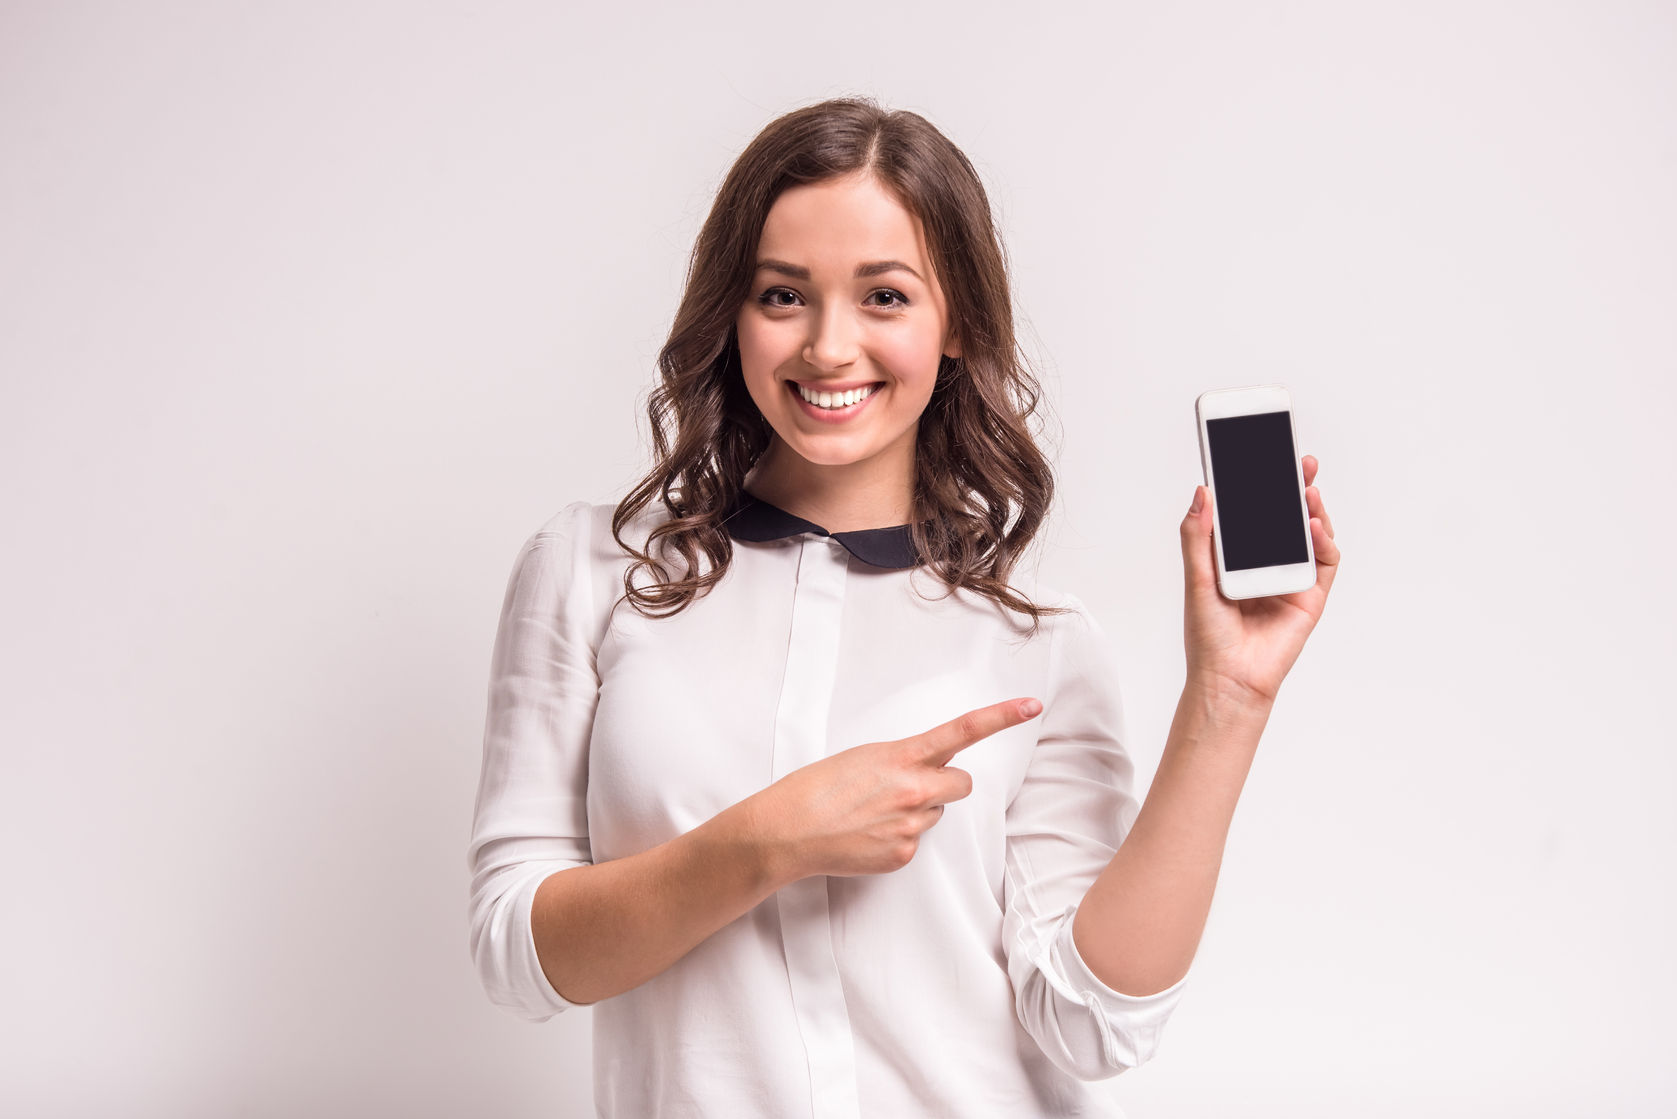 Social worker holding mobile device